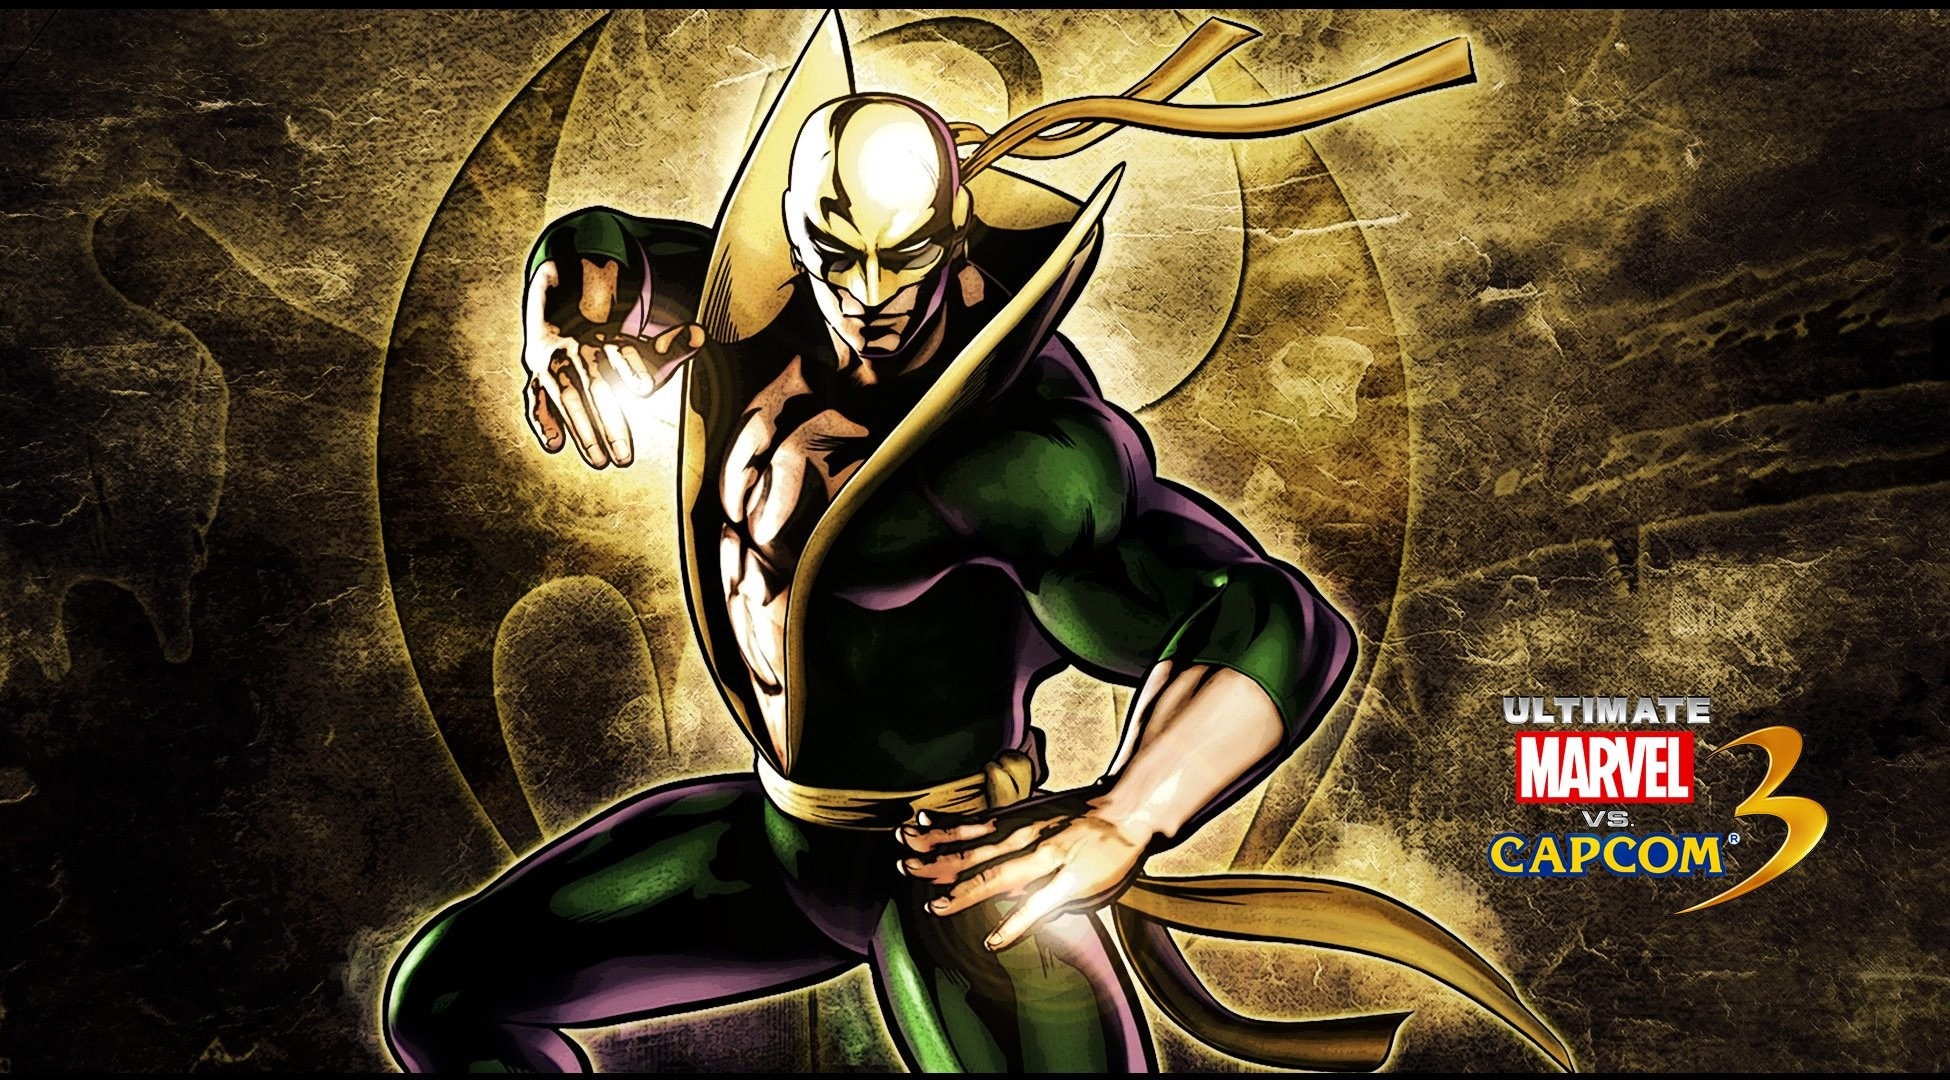 1950x1080 ironfist-umvc3-wallpaper.jpg (546336 bytes)